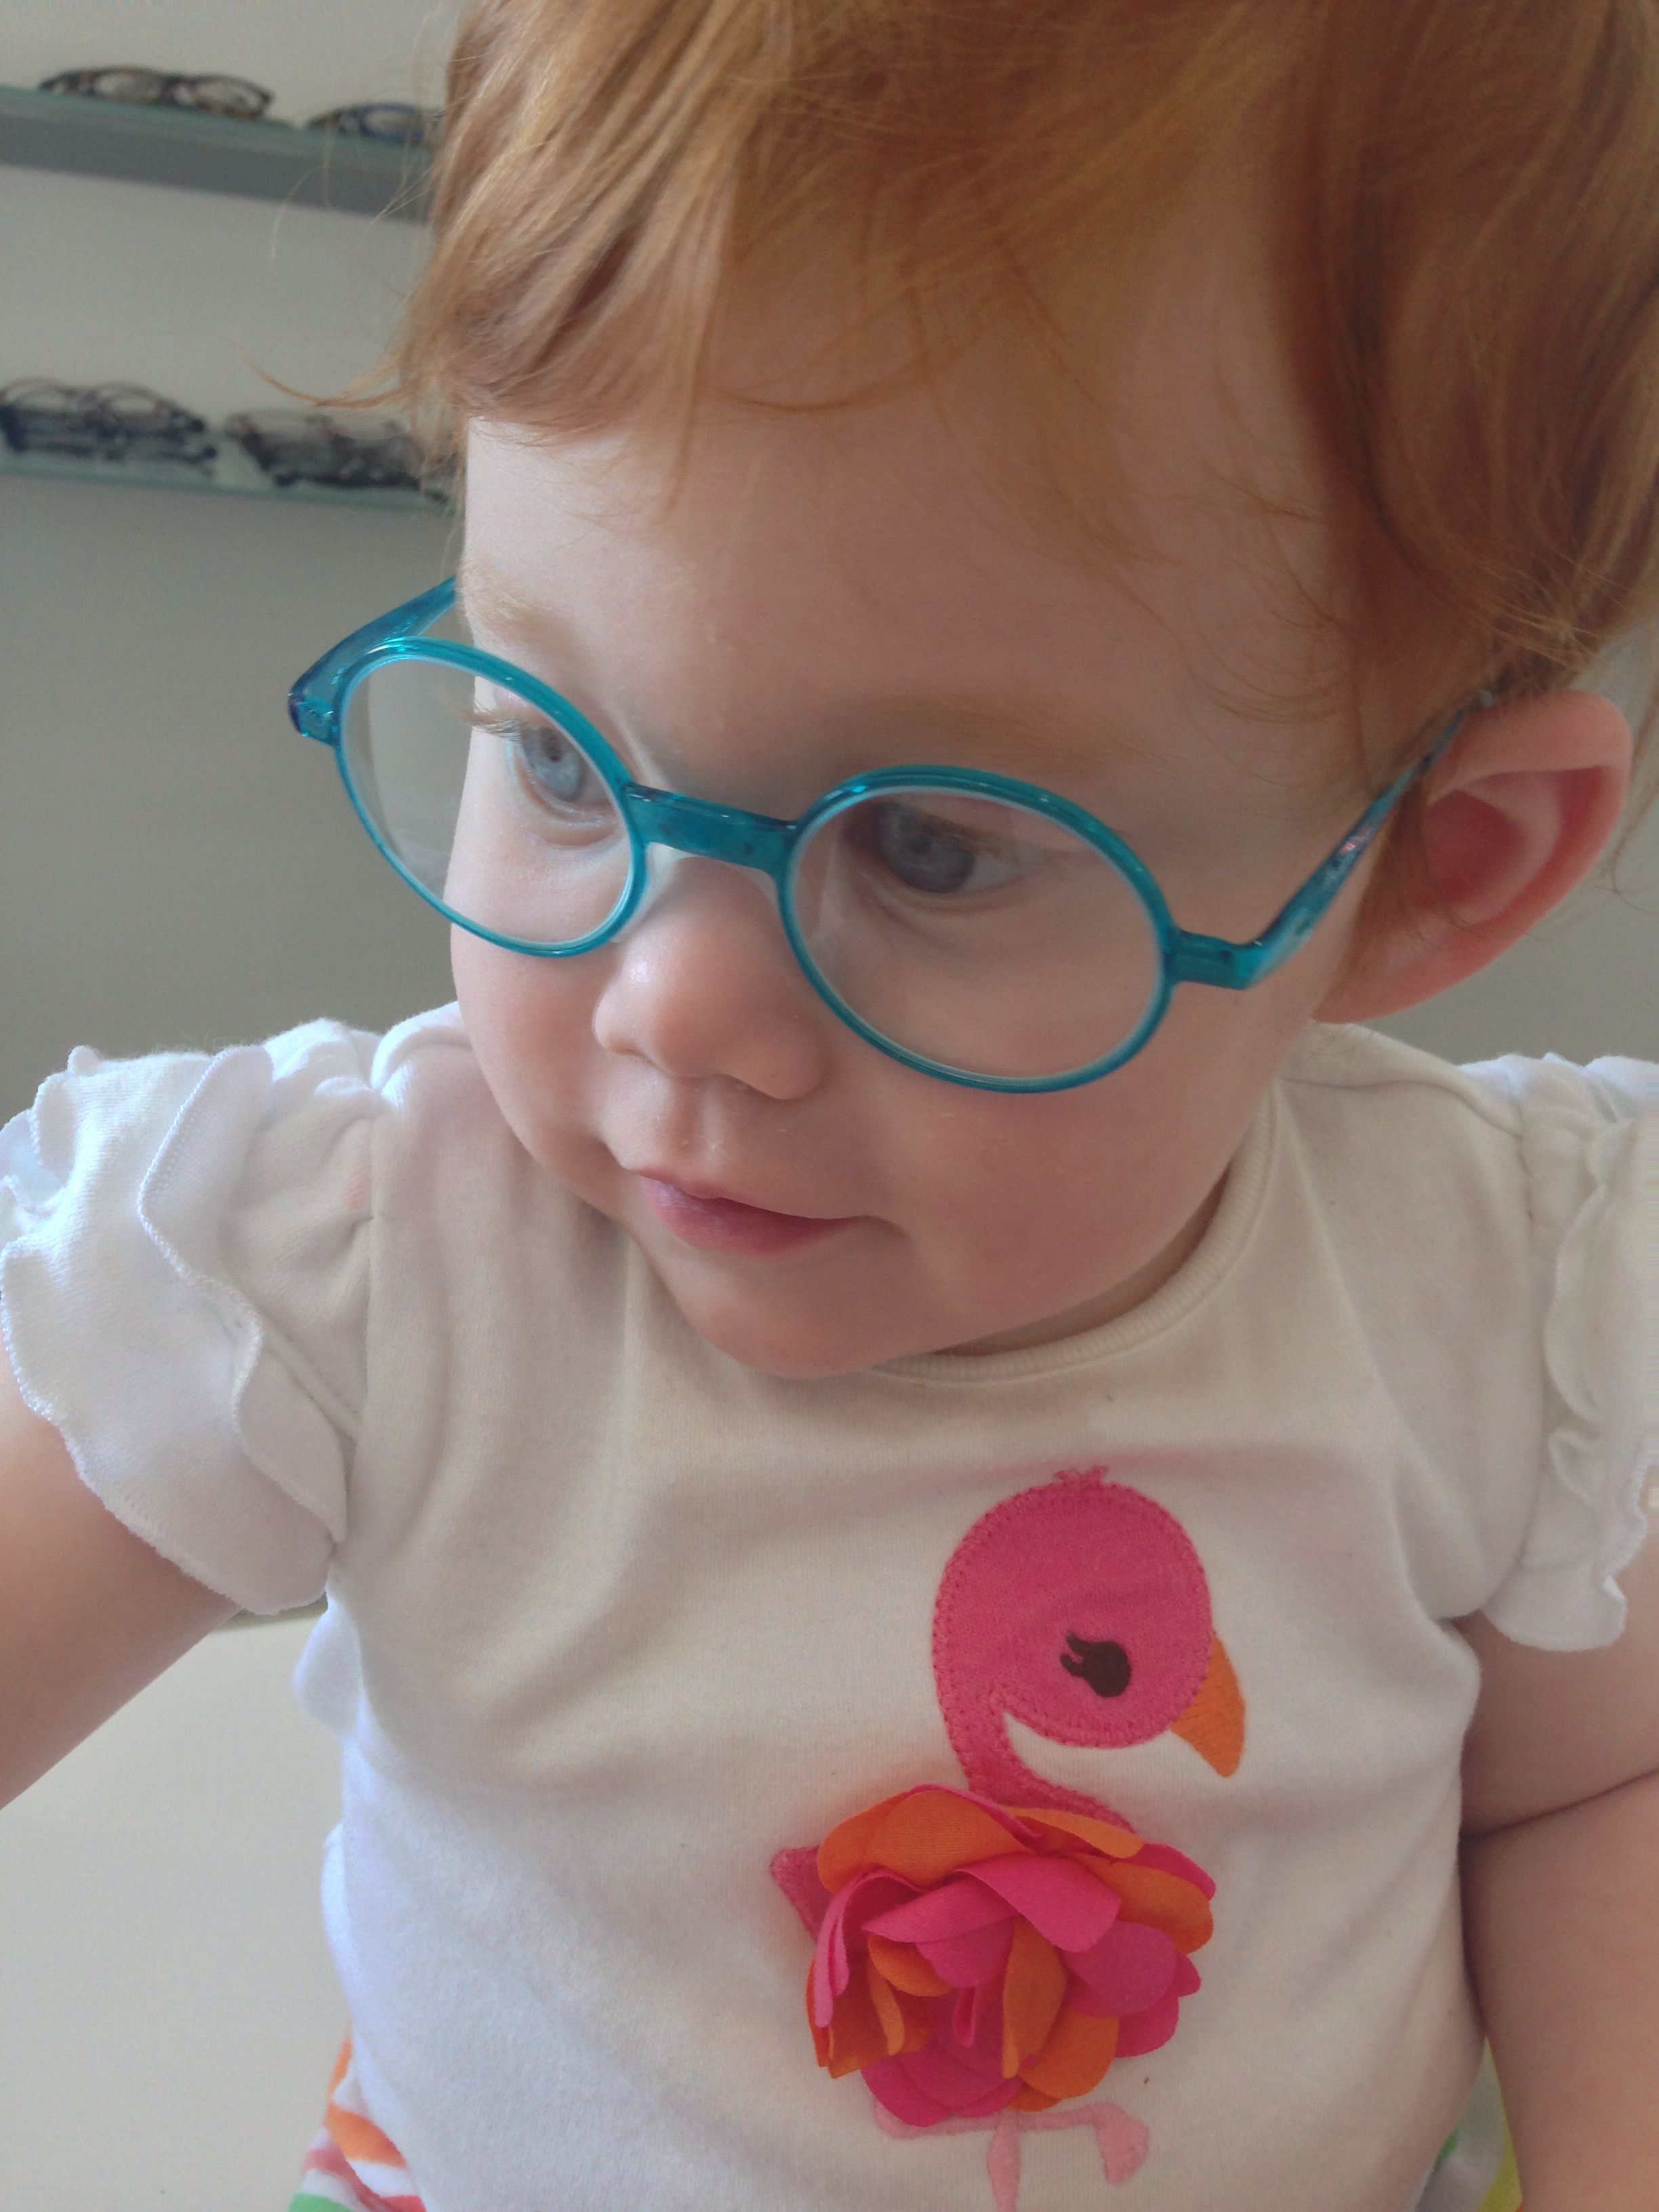 ef78abdeda5 Baby / toddler glasses by swiss flex. No goggle glasses for my girl ...